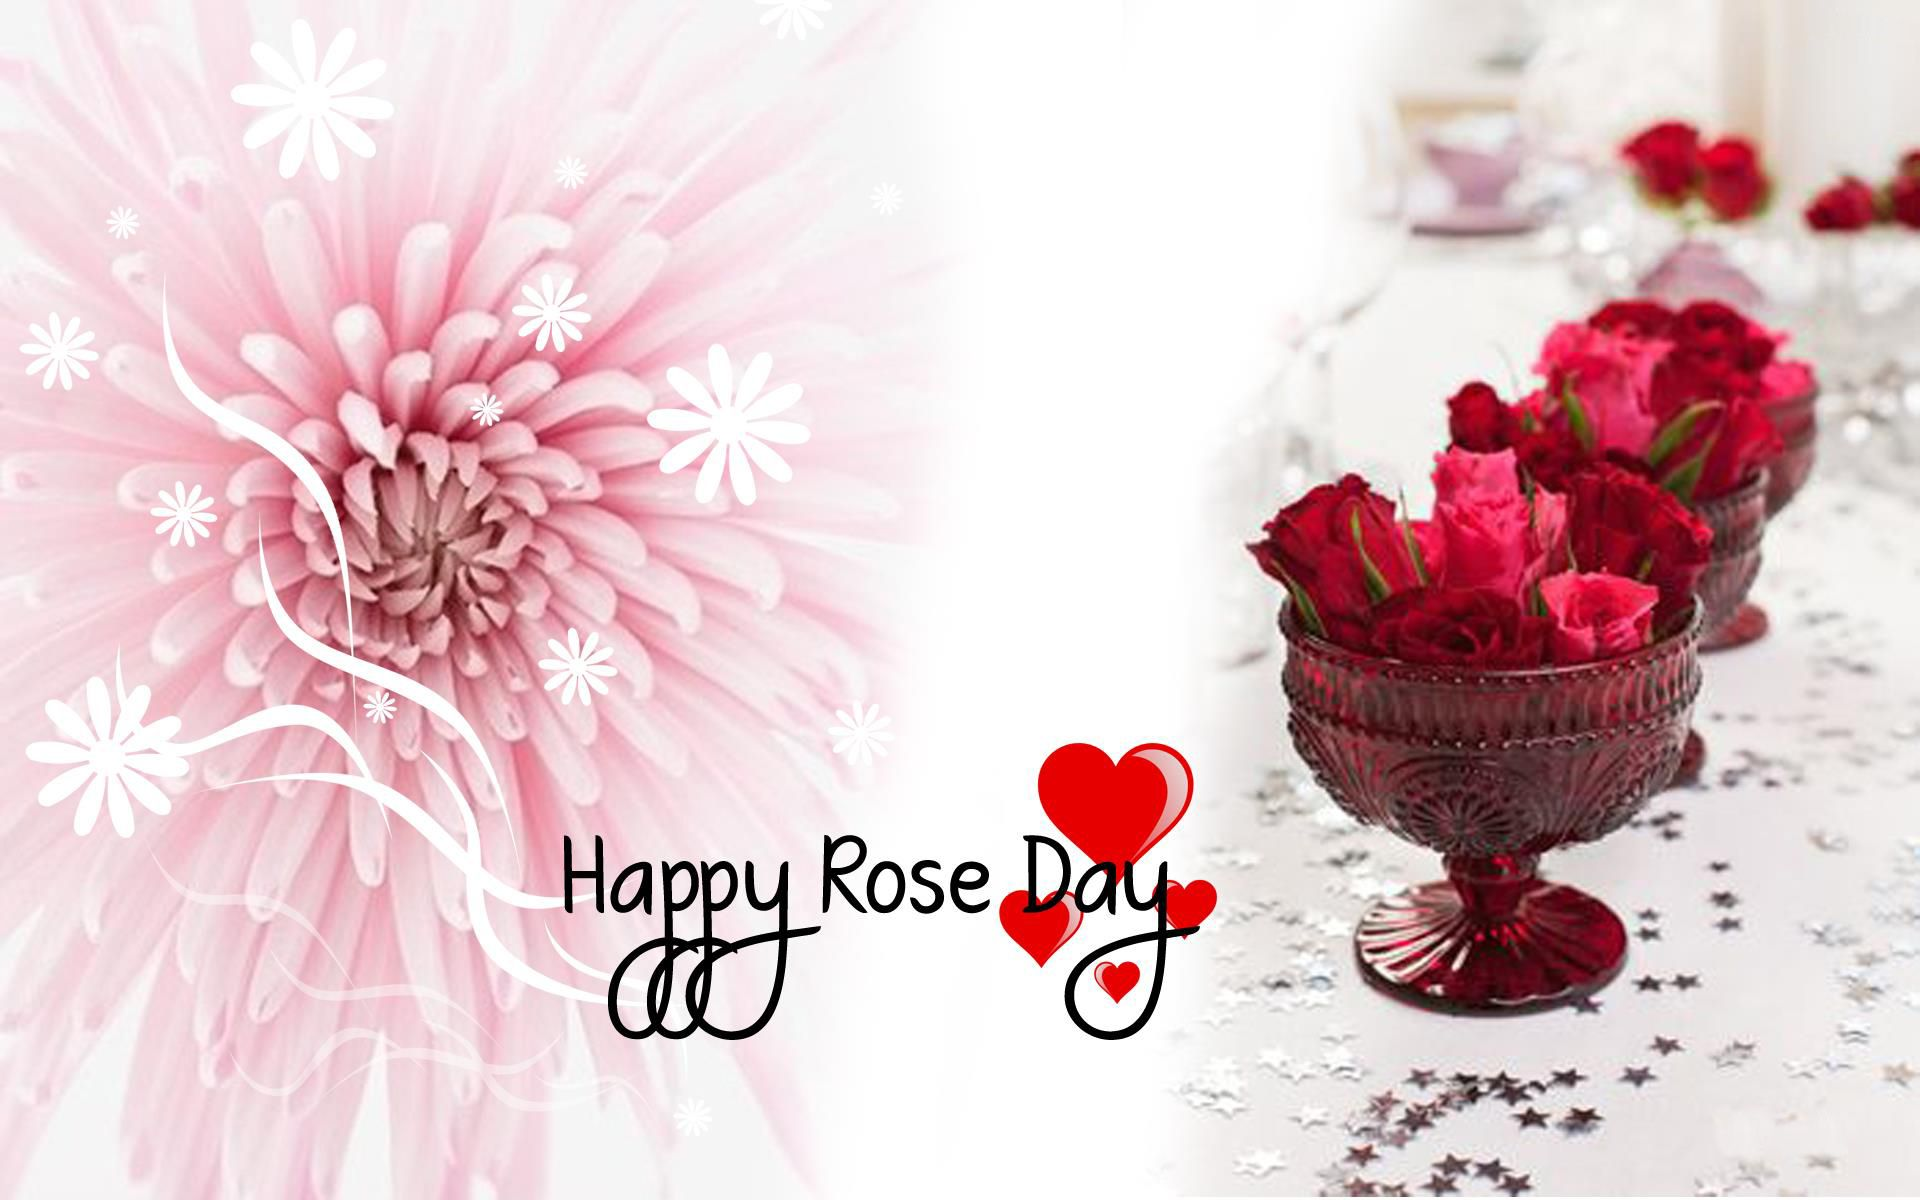 Rose Day Wallpapers And Beautiful Images 2016 Happy Rose Day Happy Rose Day Wallpaper Rose Day Wallpaper